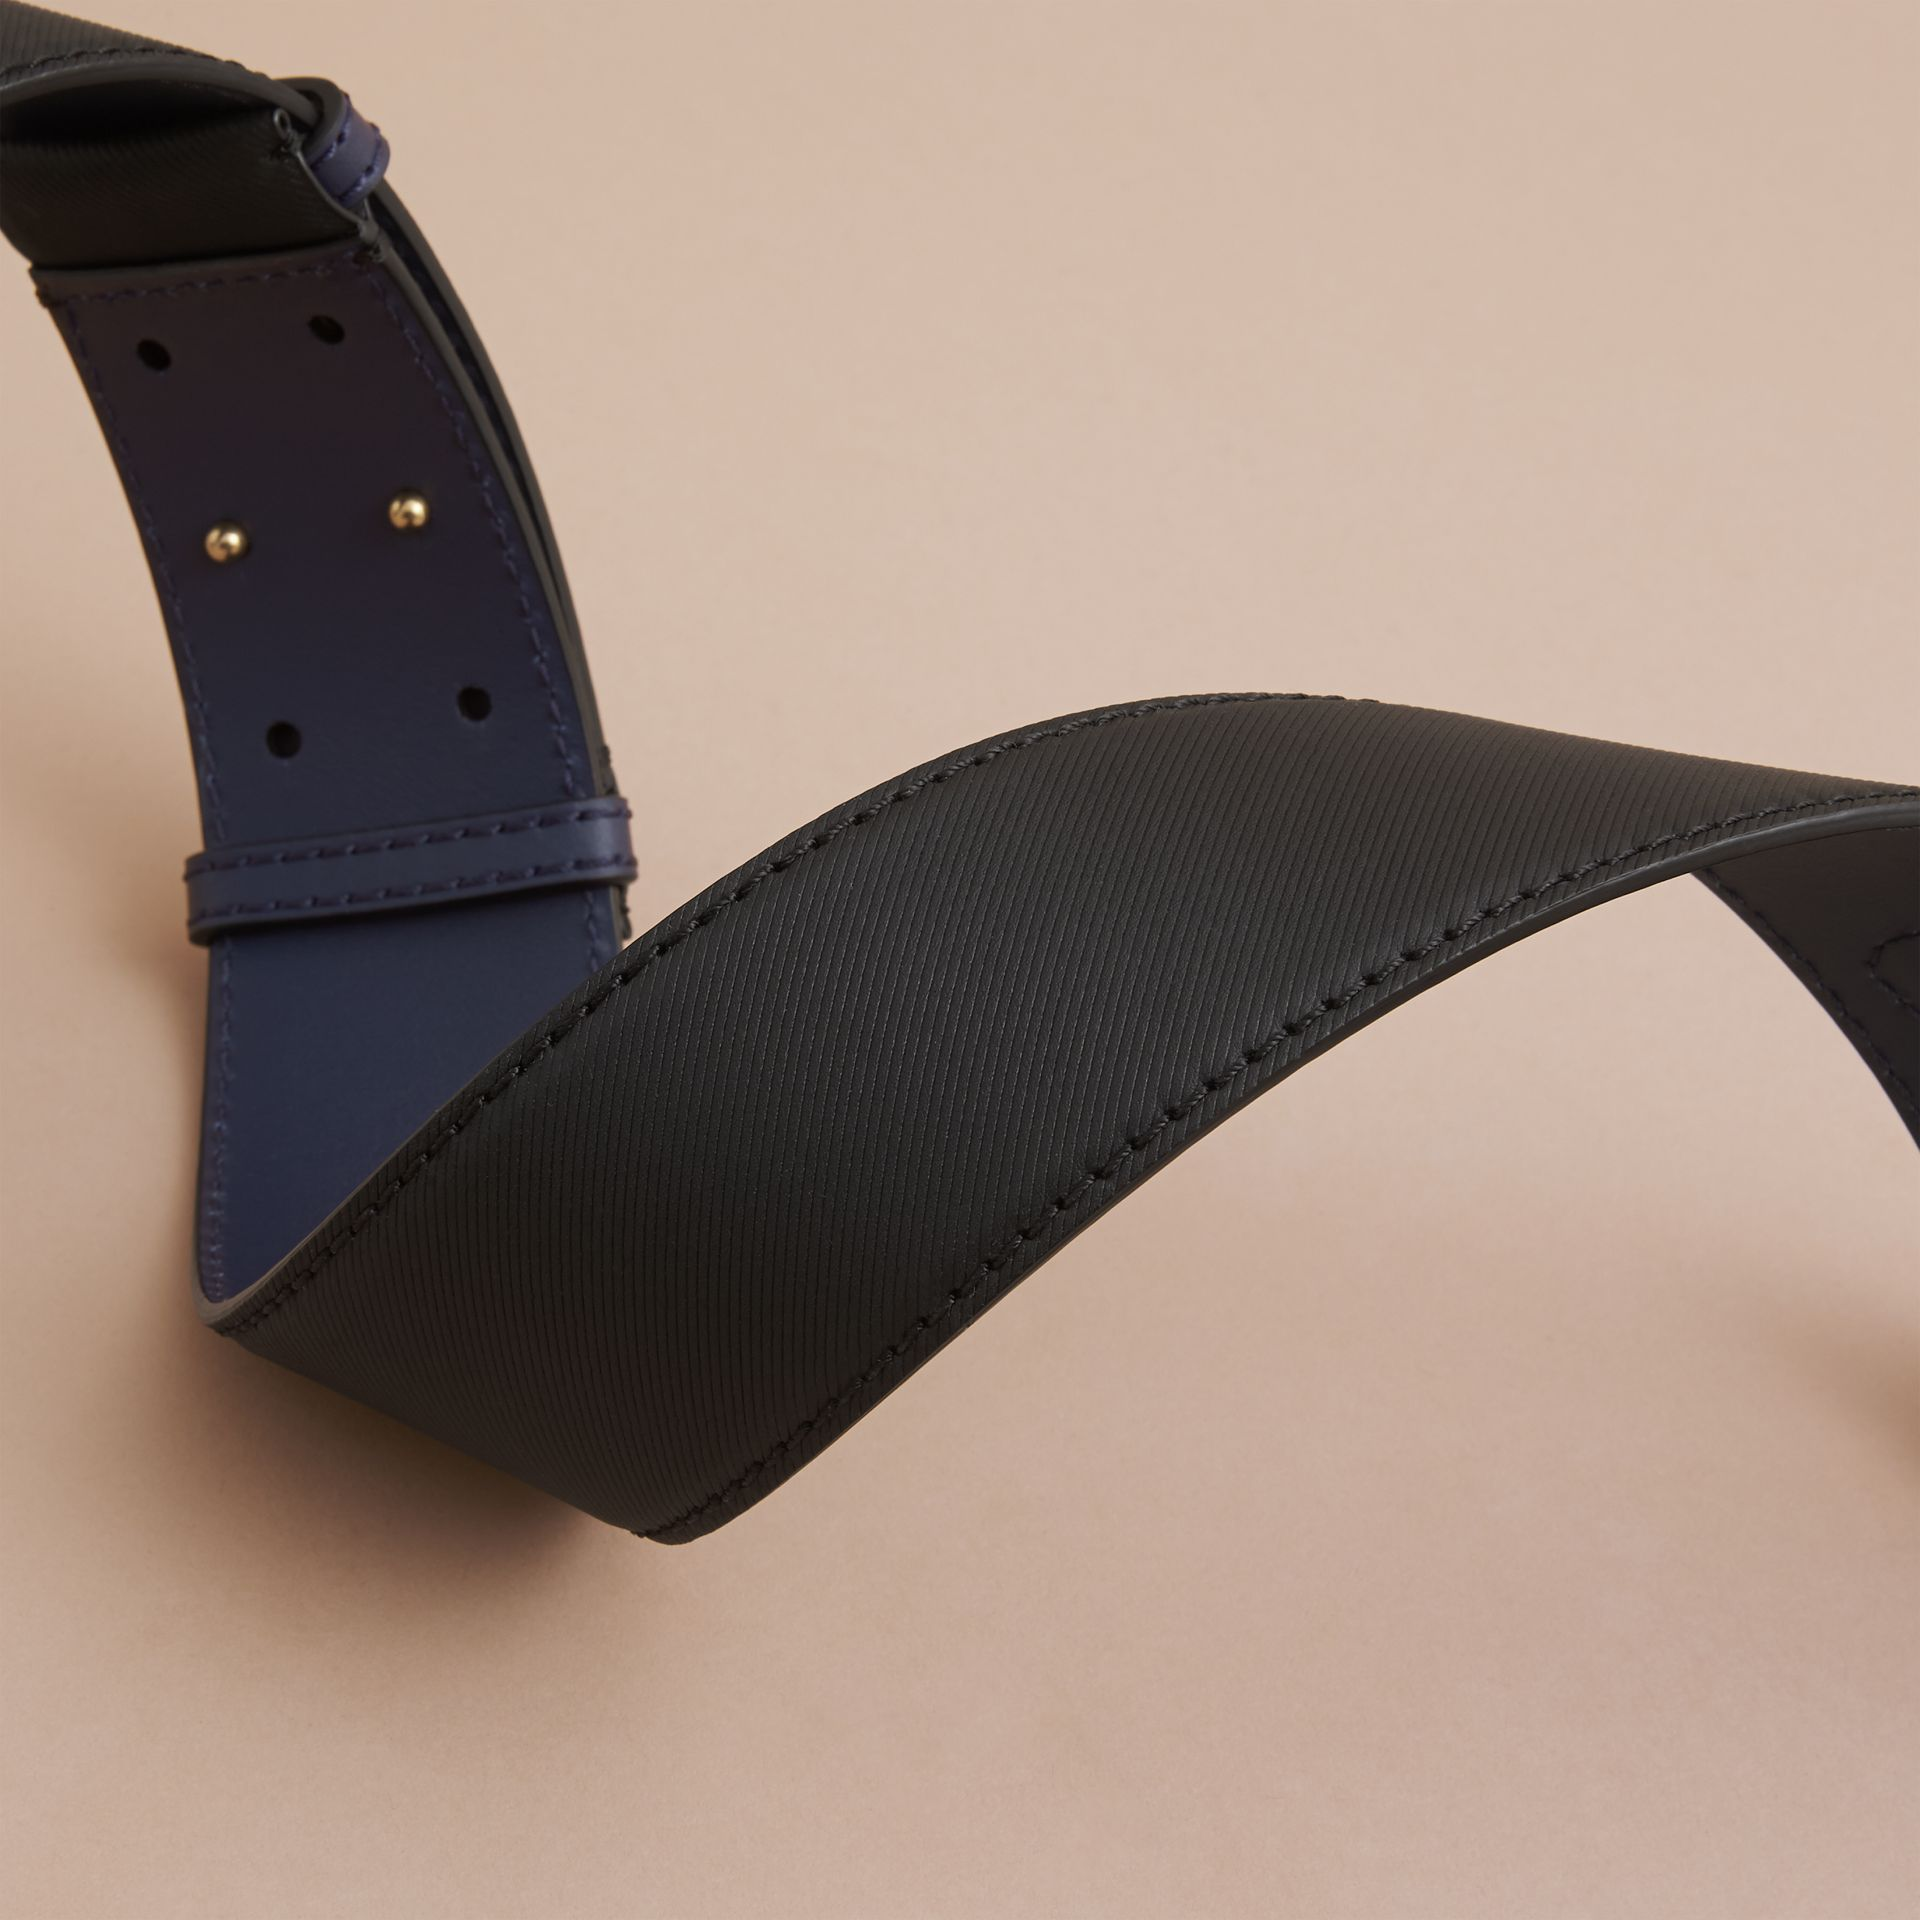 Two-tone Trench Leather Belt in Black / Ink Blue - Women | Burberry - gallery image 3